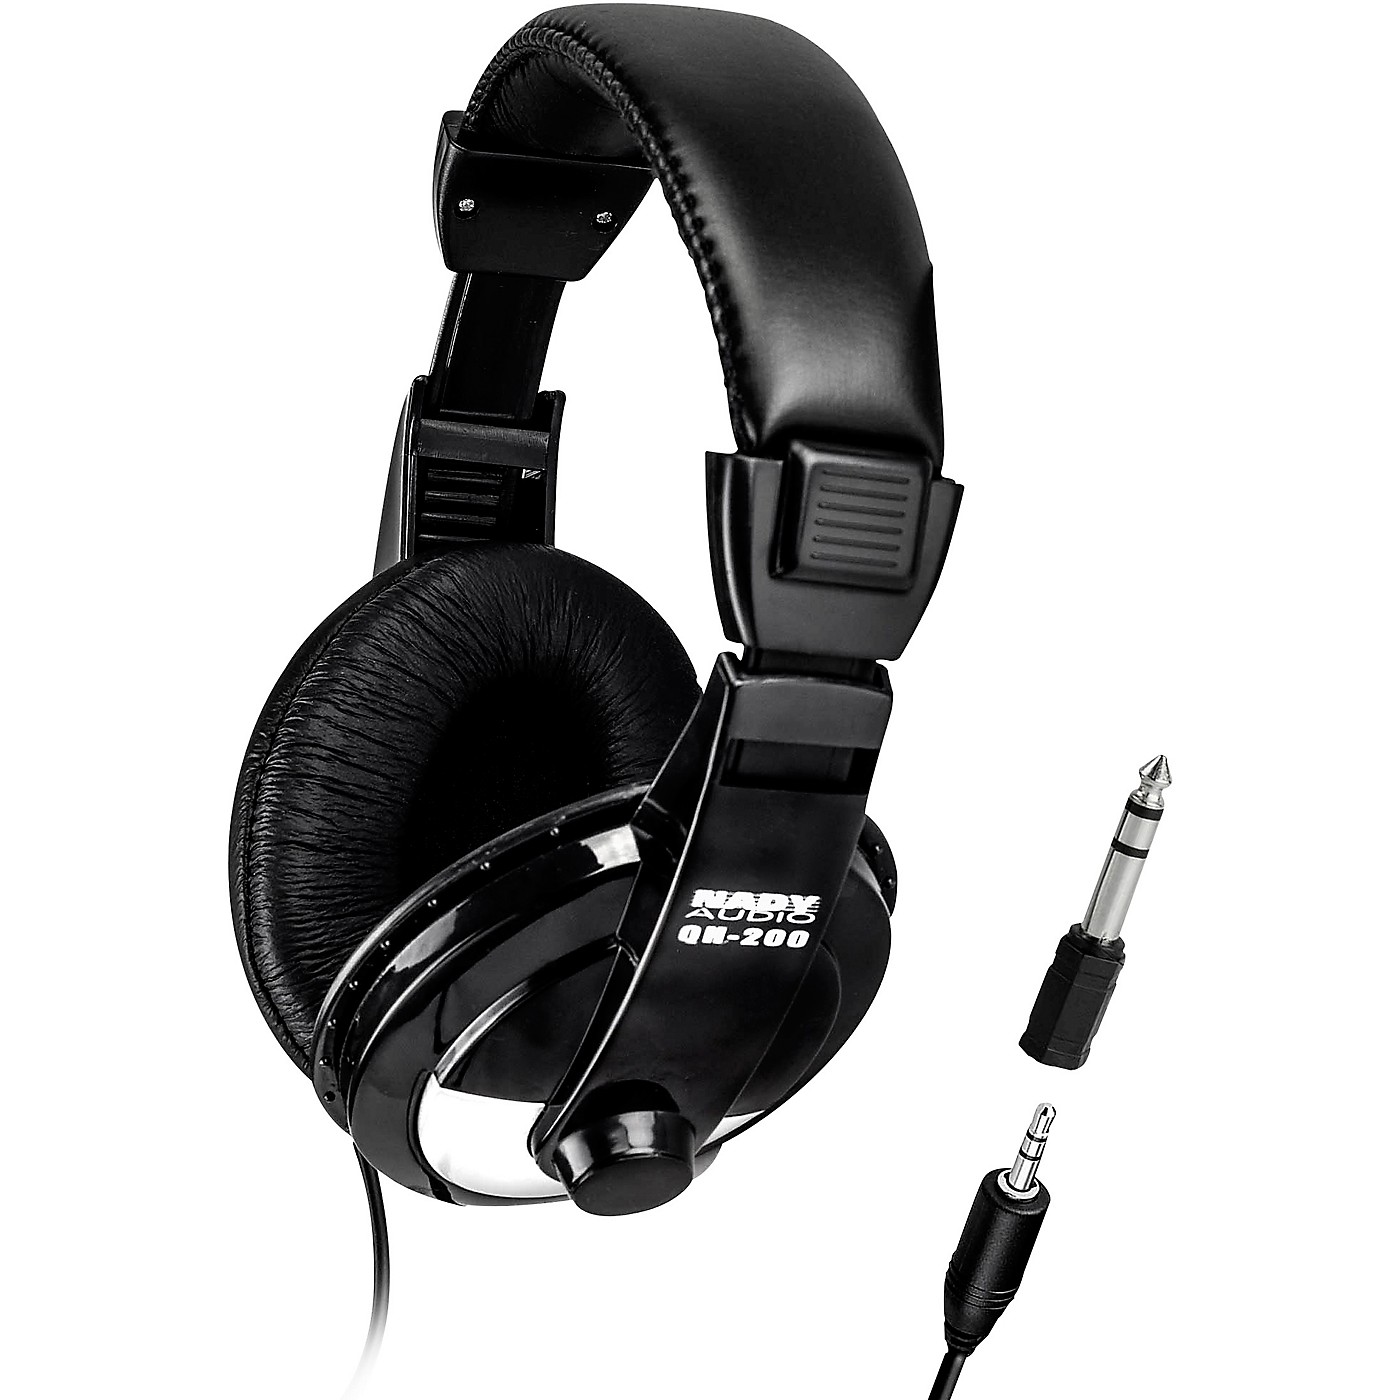 Nady QH-200 Stereo Headphones 40 mm drivers with adjustable headband thumbnail